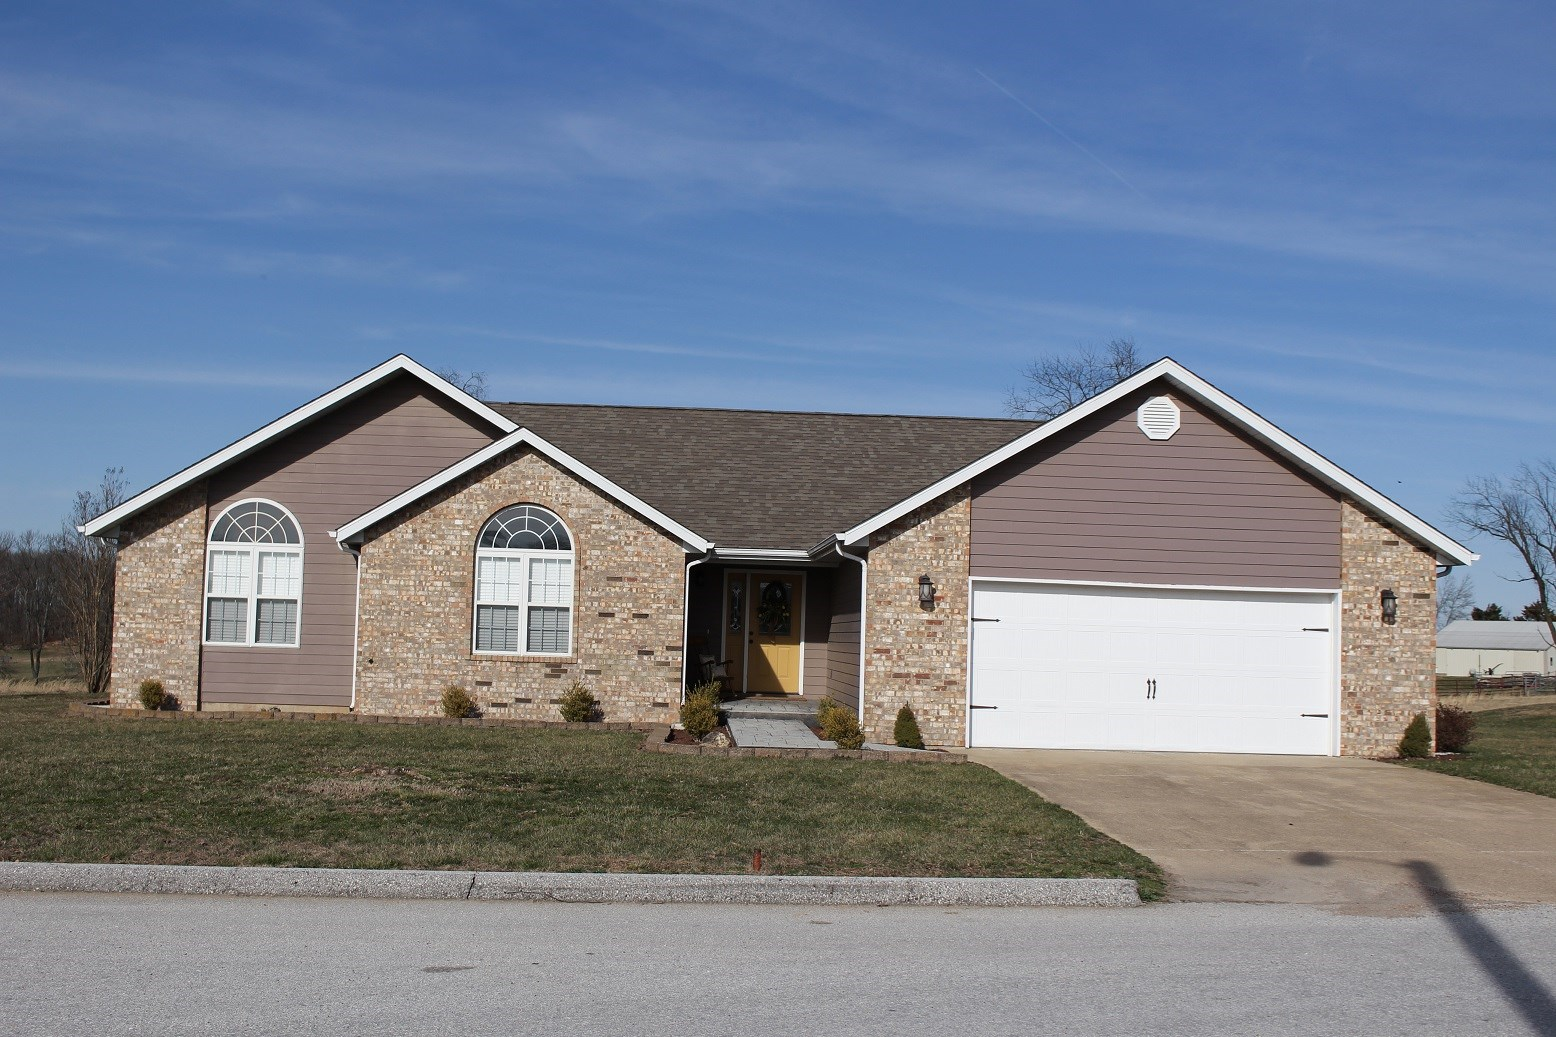 Home for Sale in Mountain Grove Missouri